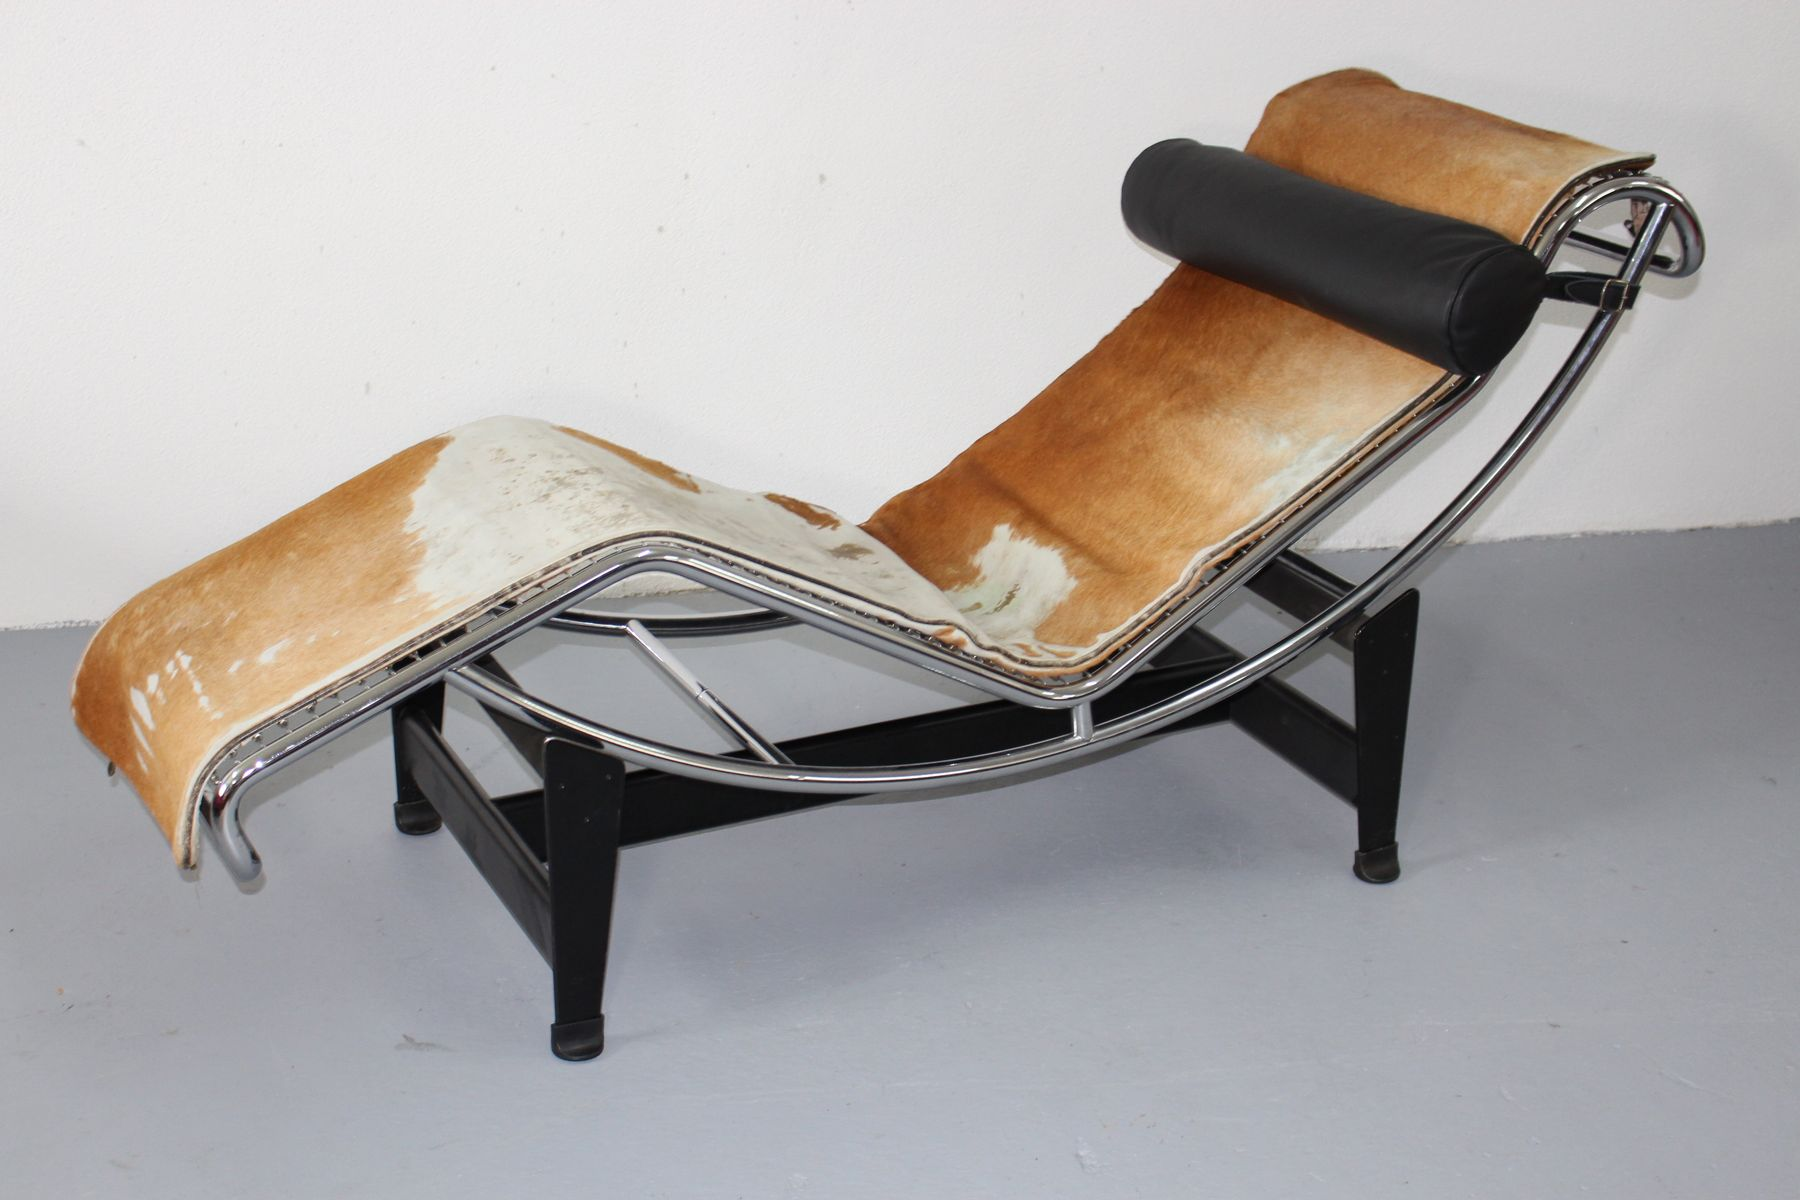 Lc 4 chaise lounge by le corbusier jeanneret and for Chaise lounge corbusier